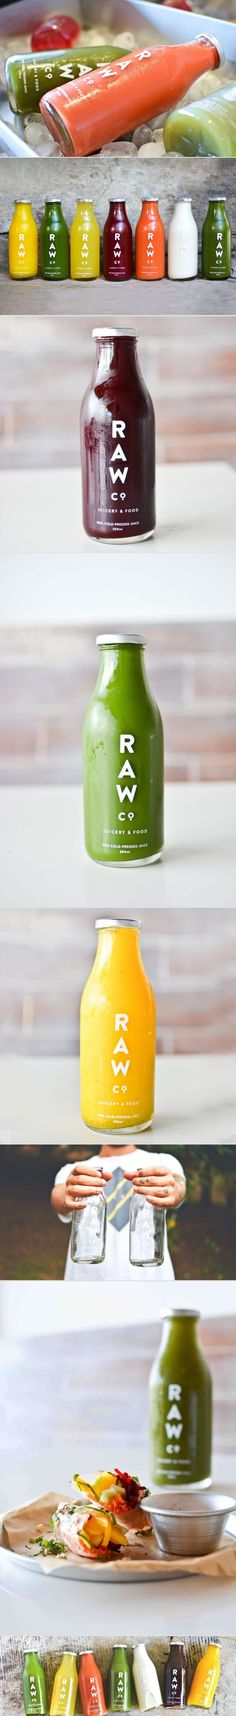 Raw Co. Juicery & Food. This will grabs the attention of every passerby. #packaging #design